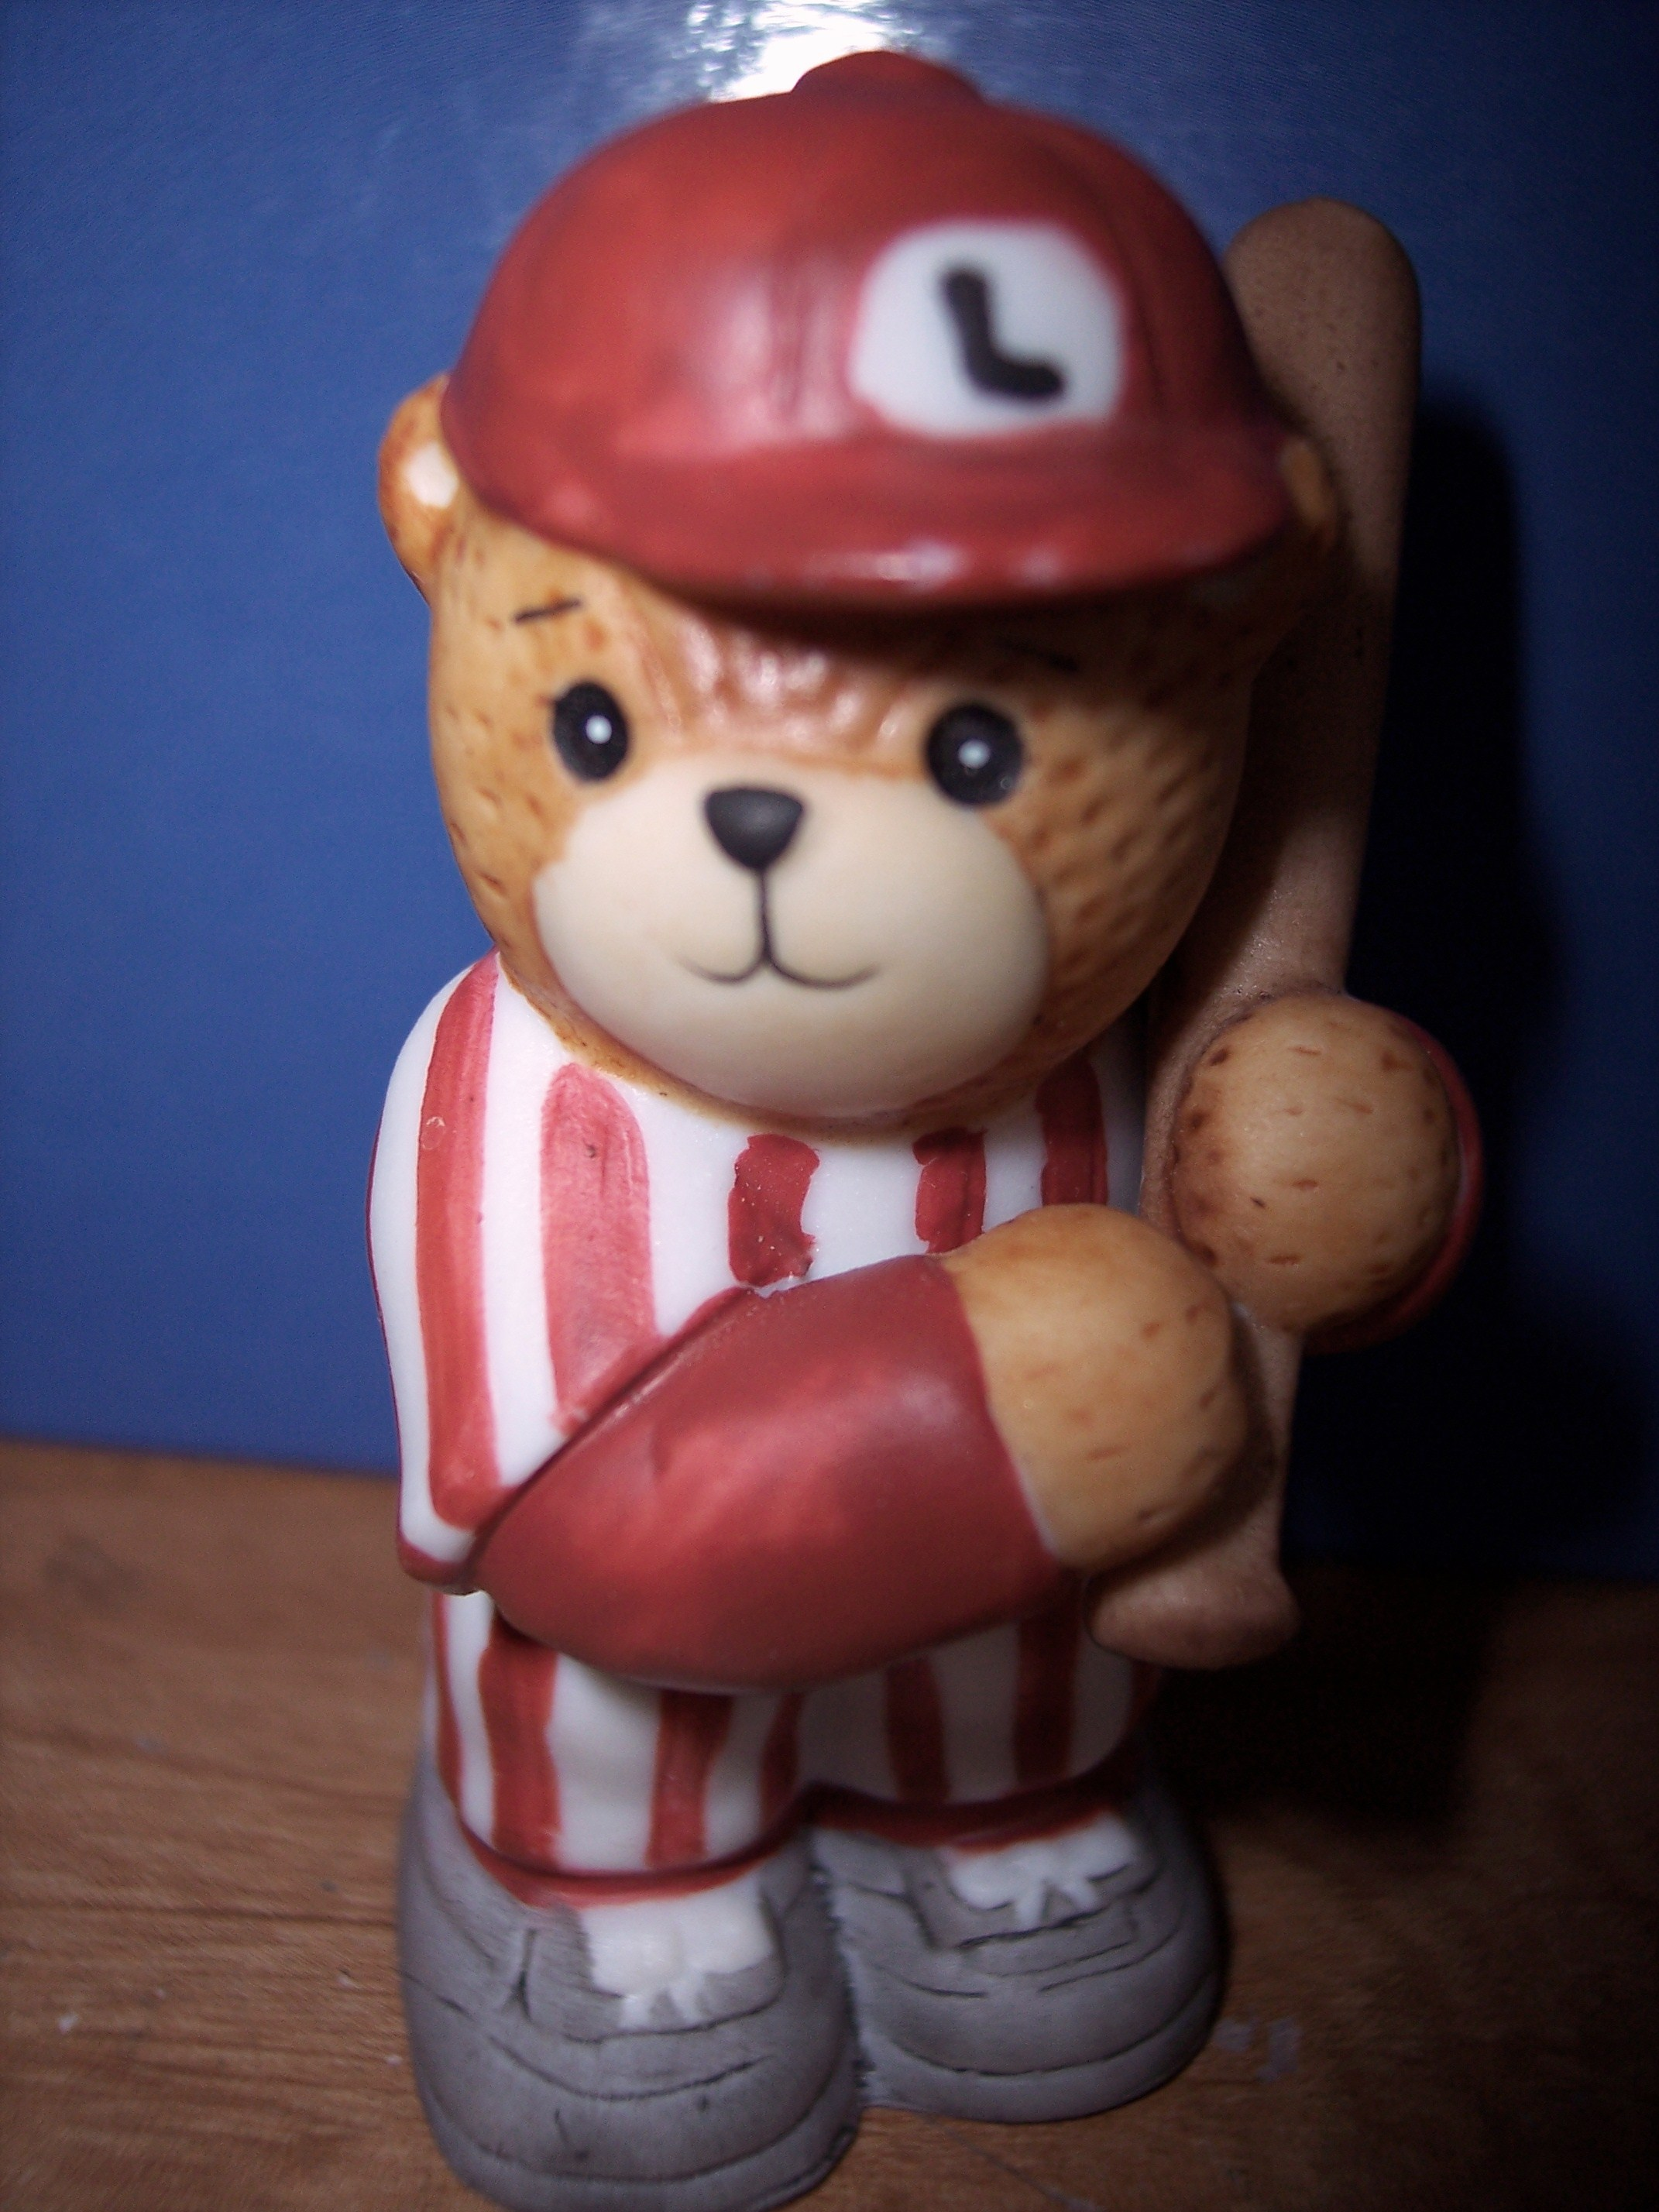 Baseball player in red uniform G19-2-4